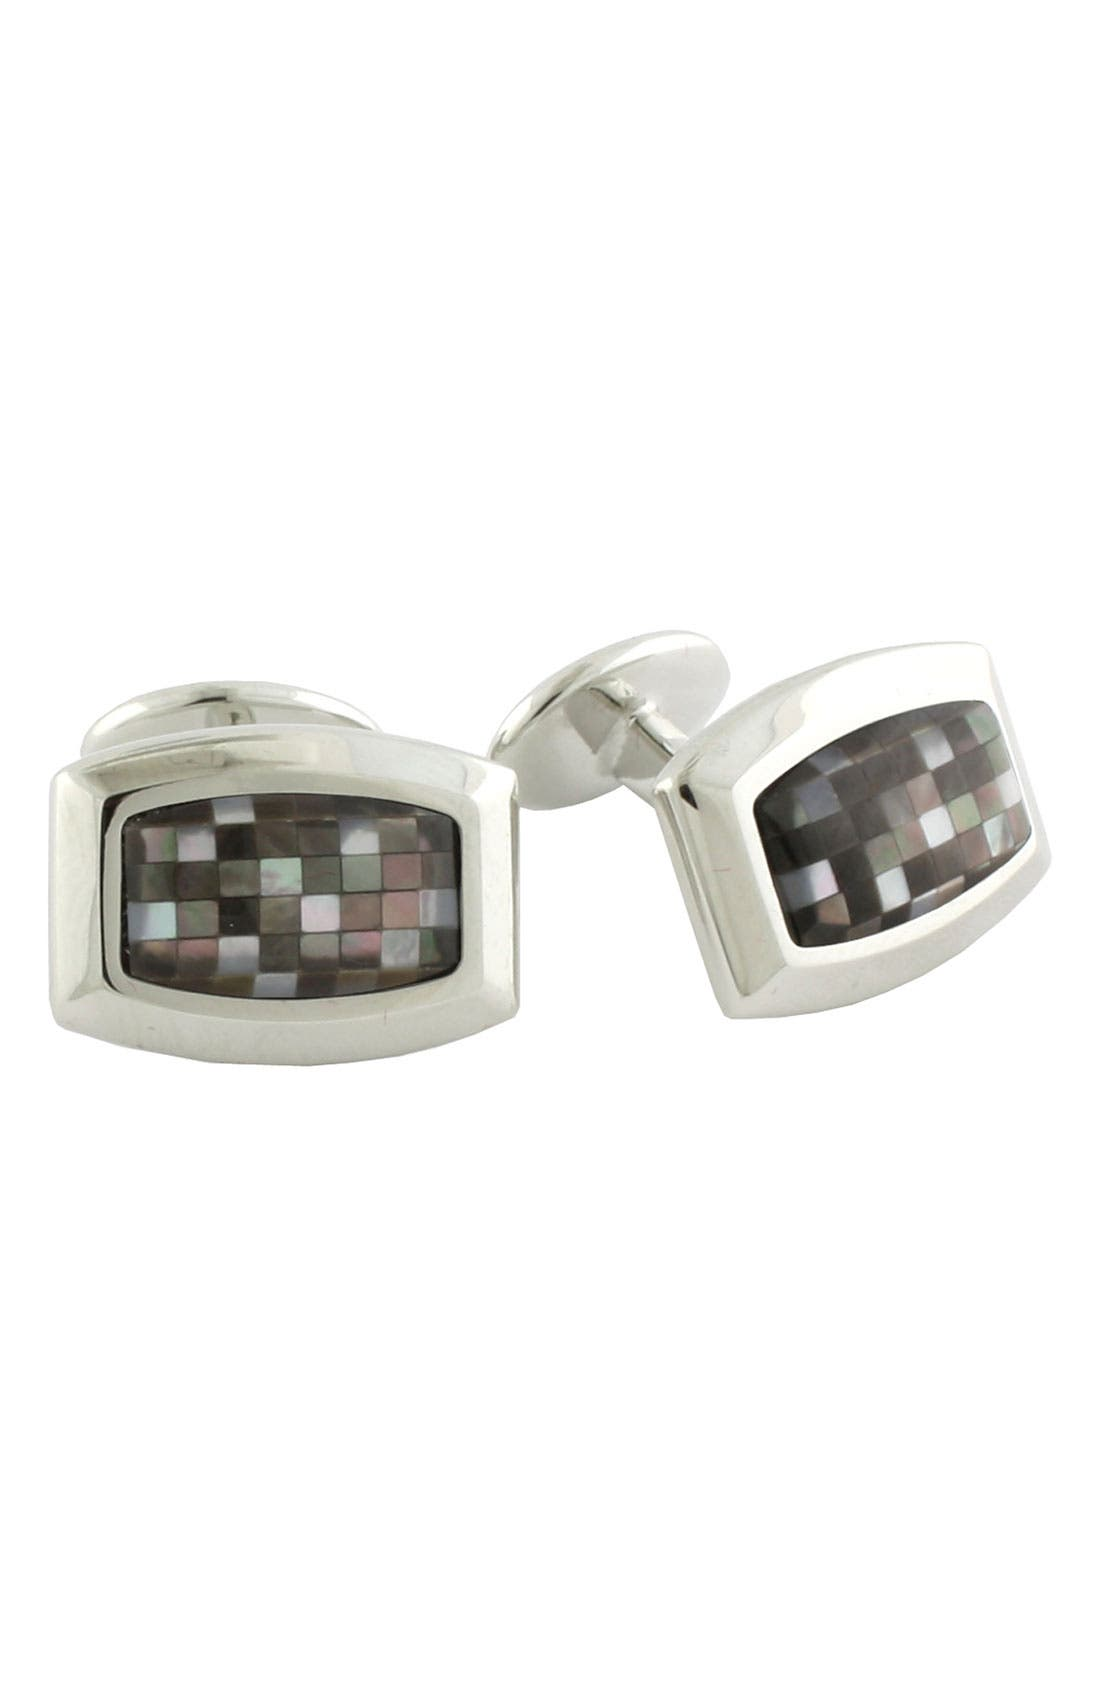 Main Image - David Donahue Rounded Rectangle Sterling Silver Cuff Links